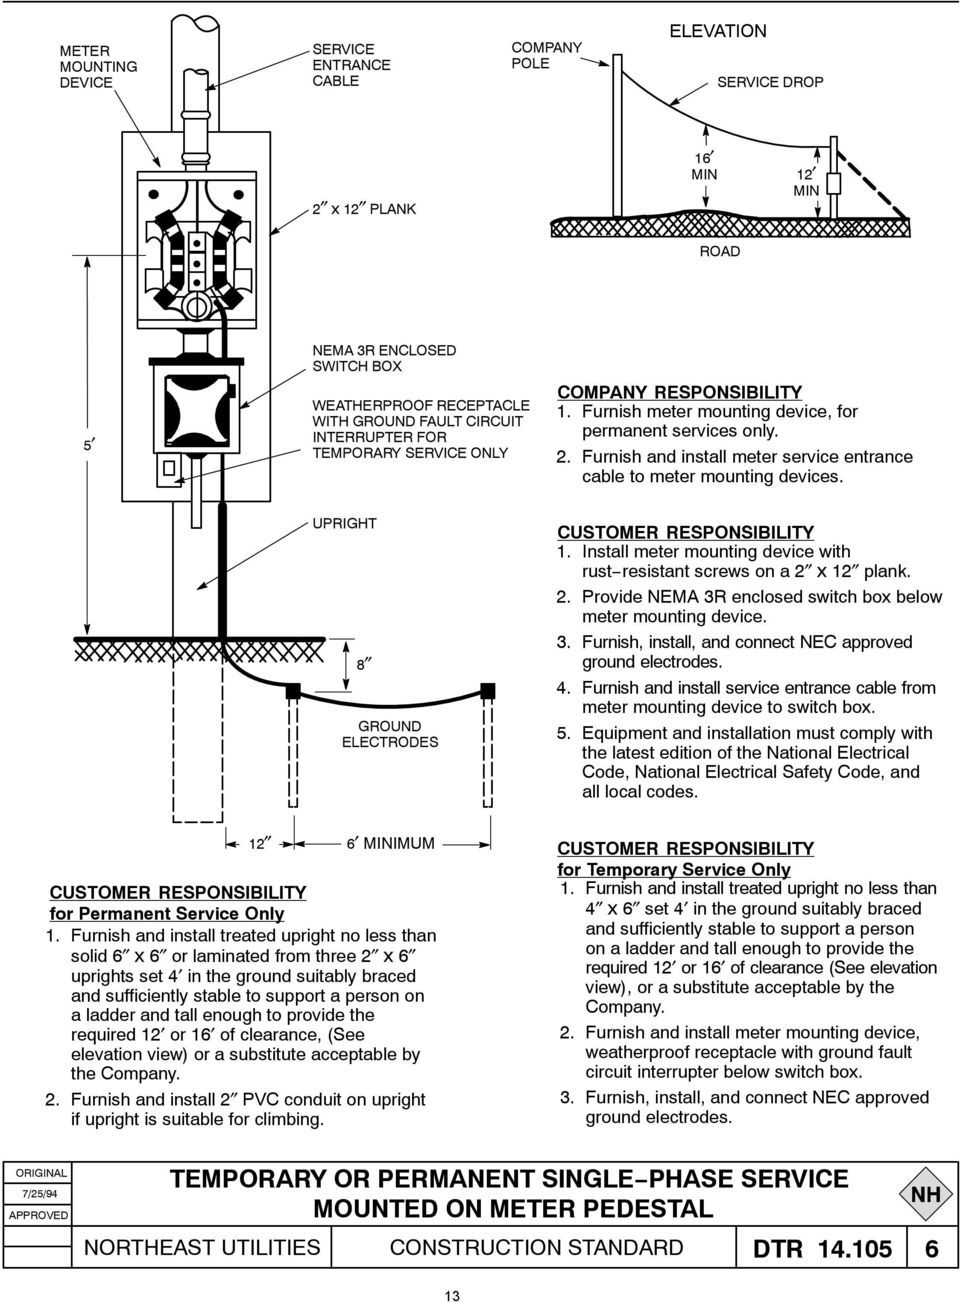 New Hampshire Requirements For Electric Service Connections Pdf House Wiring With The Nec Furnish And Install Meter Entrance Cable To Mounting Devices Upright 8 Ground Electrodes